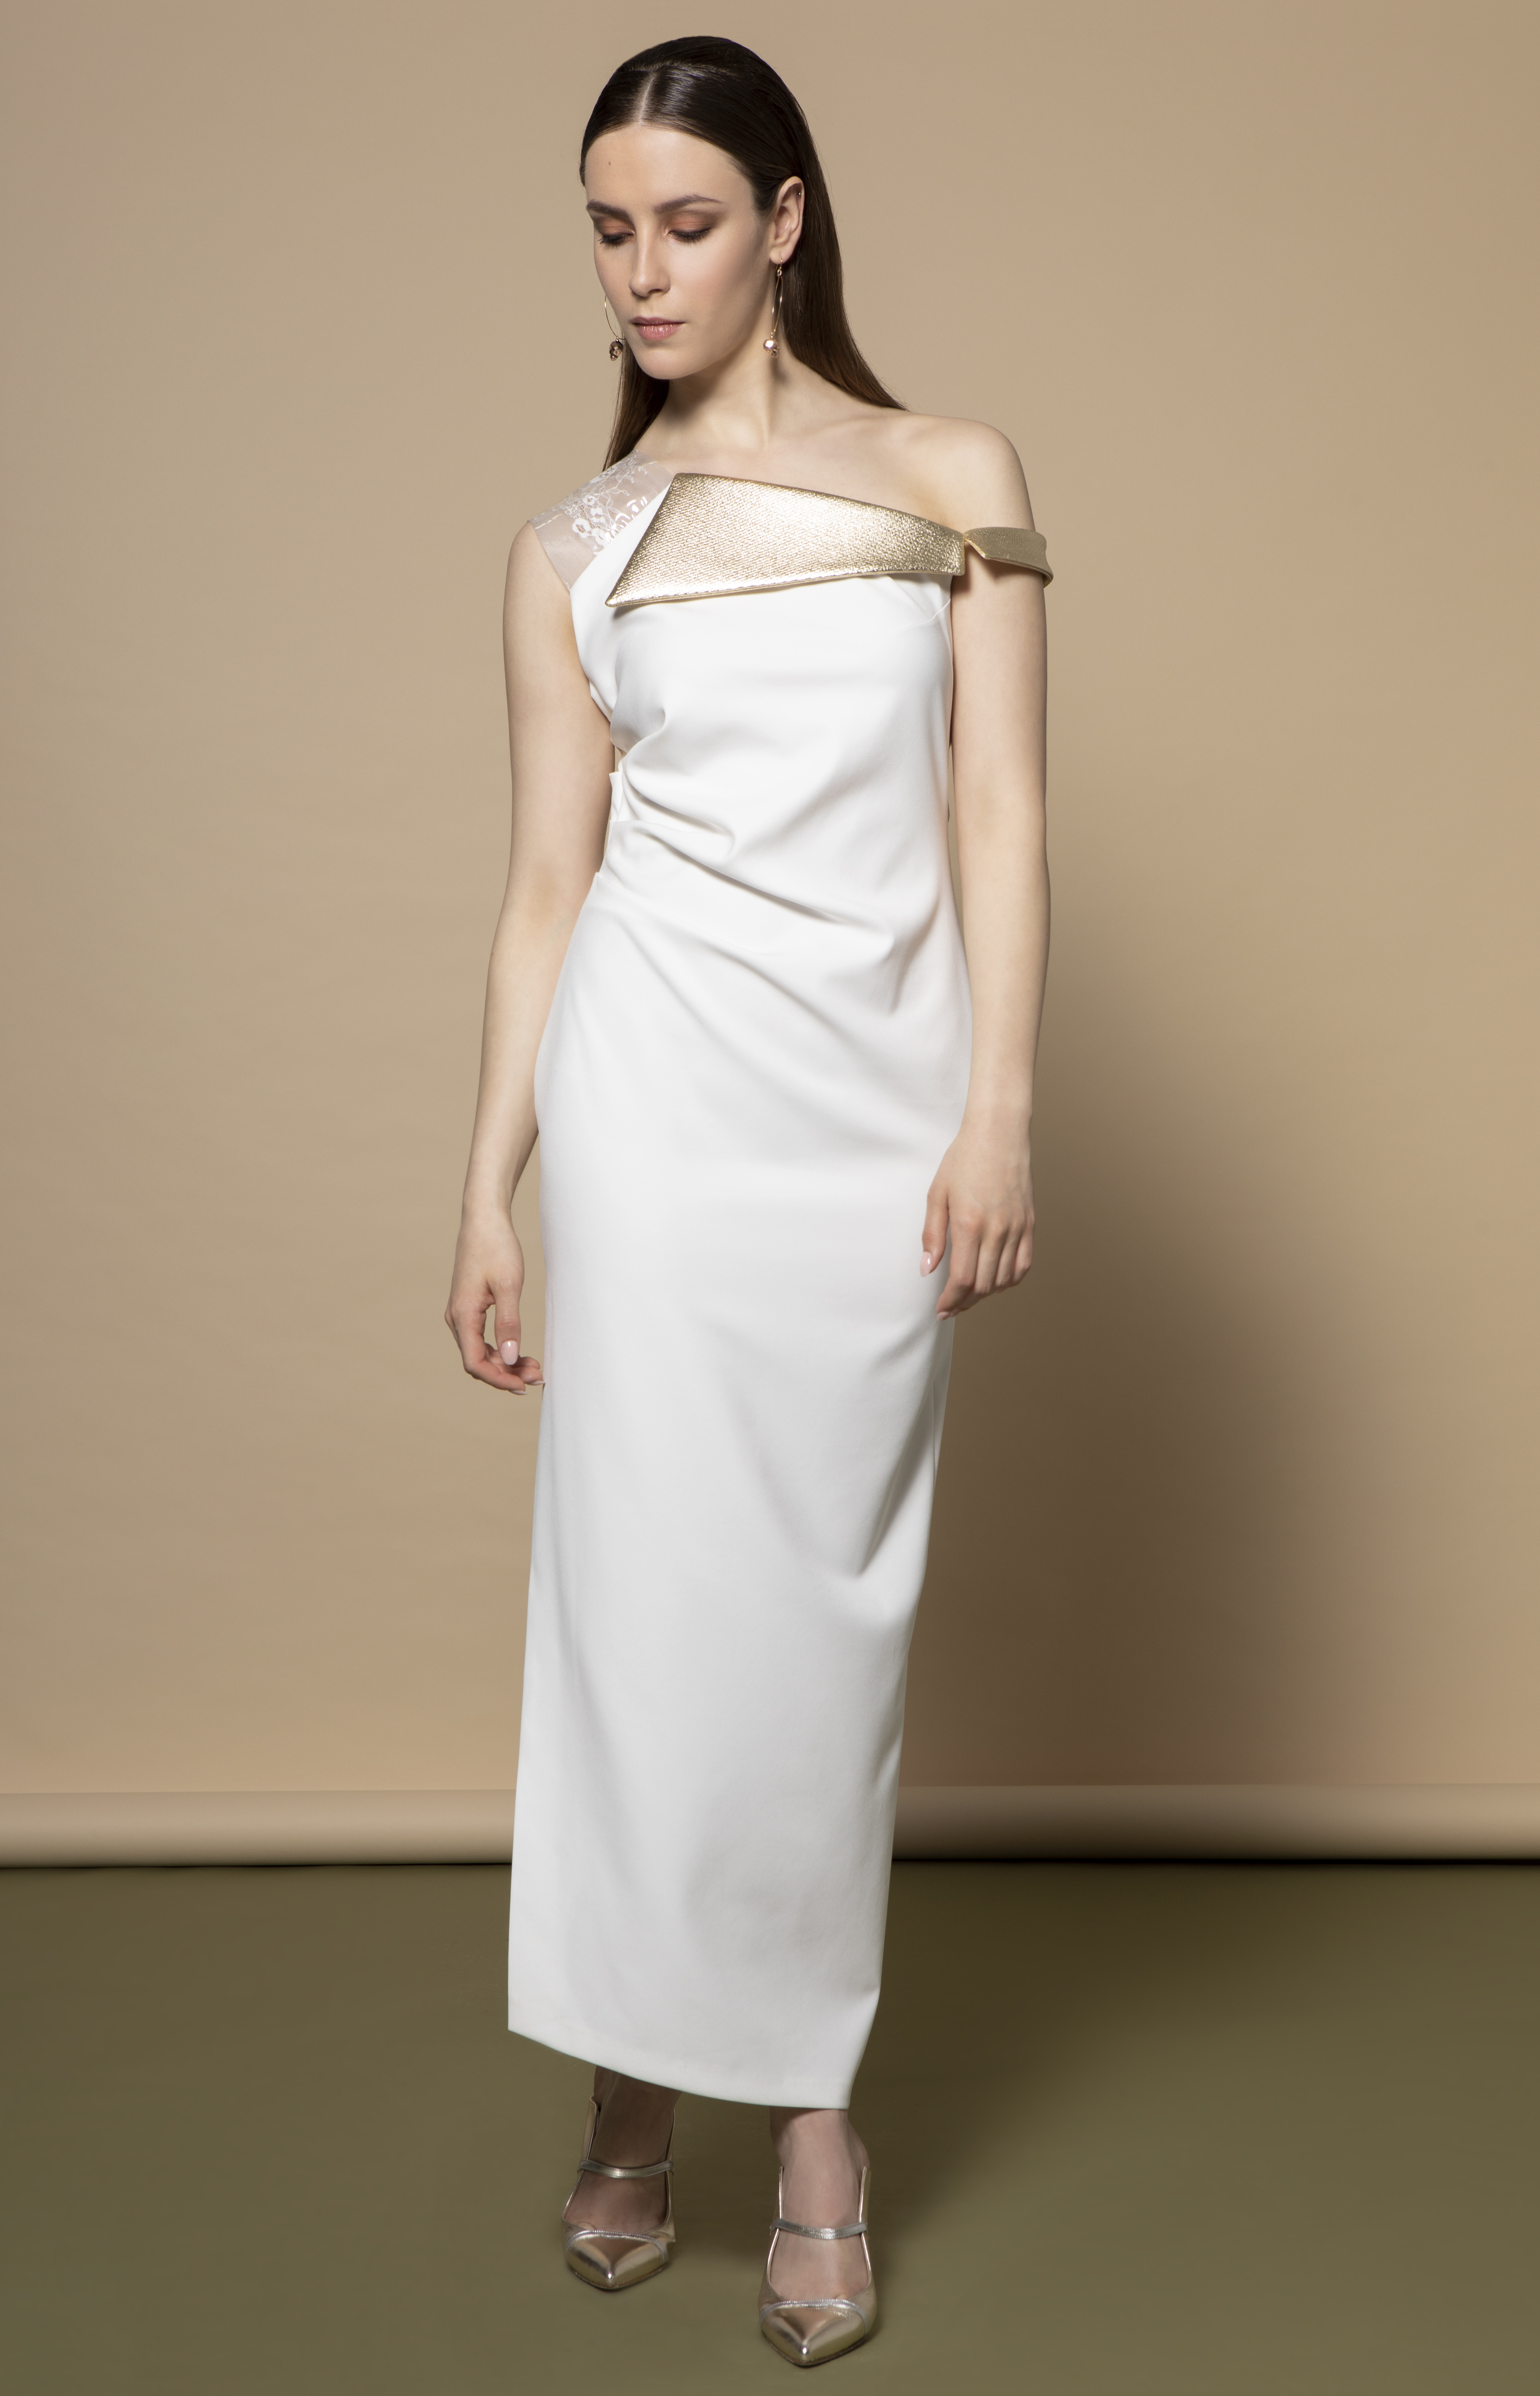 Roselle Dress in Ivory with Gold Trims